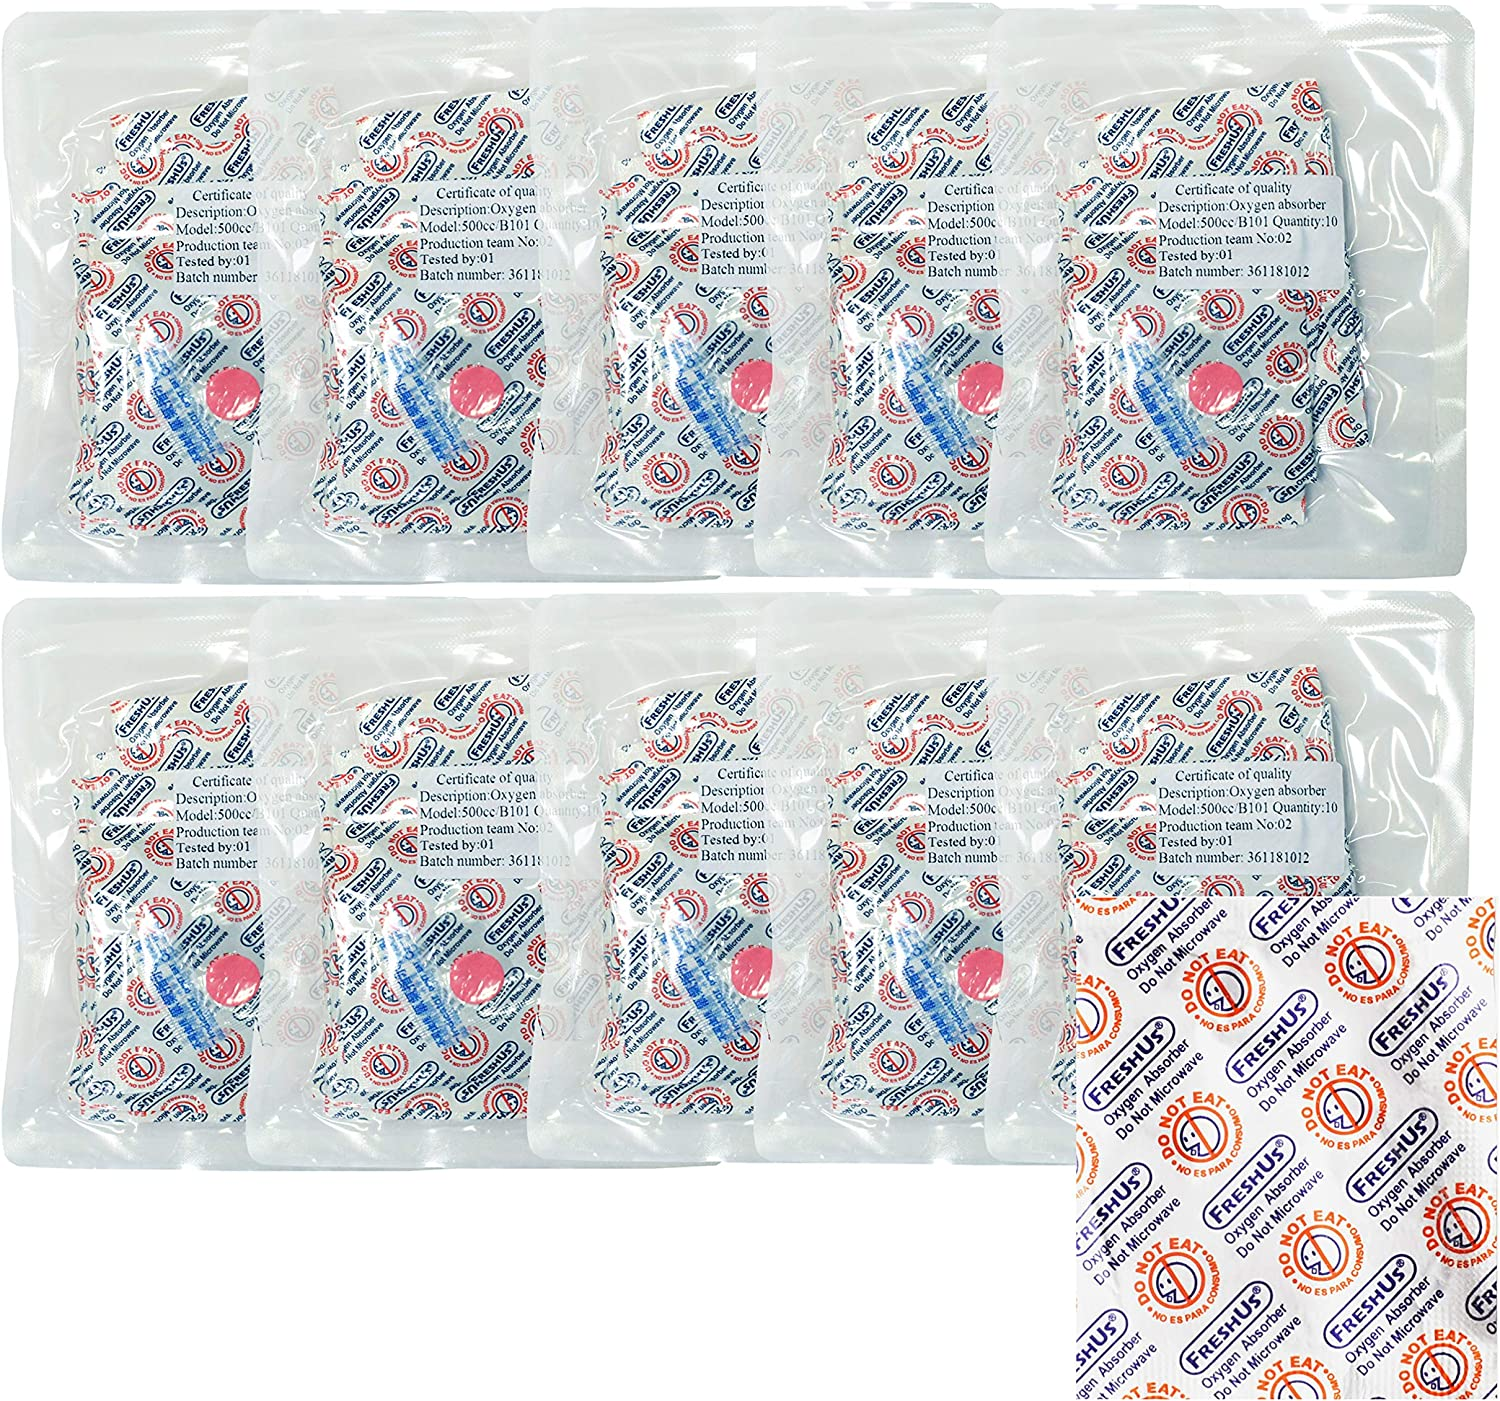 AwePackage 500cc Oxygen Absorber(10 Indiviual Packs of 10 Packets, Total 100 Packets) - Long Term Food Storage (100, 500 CC)